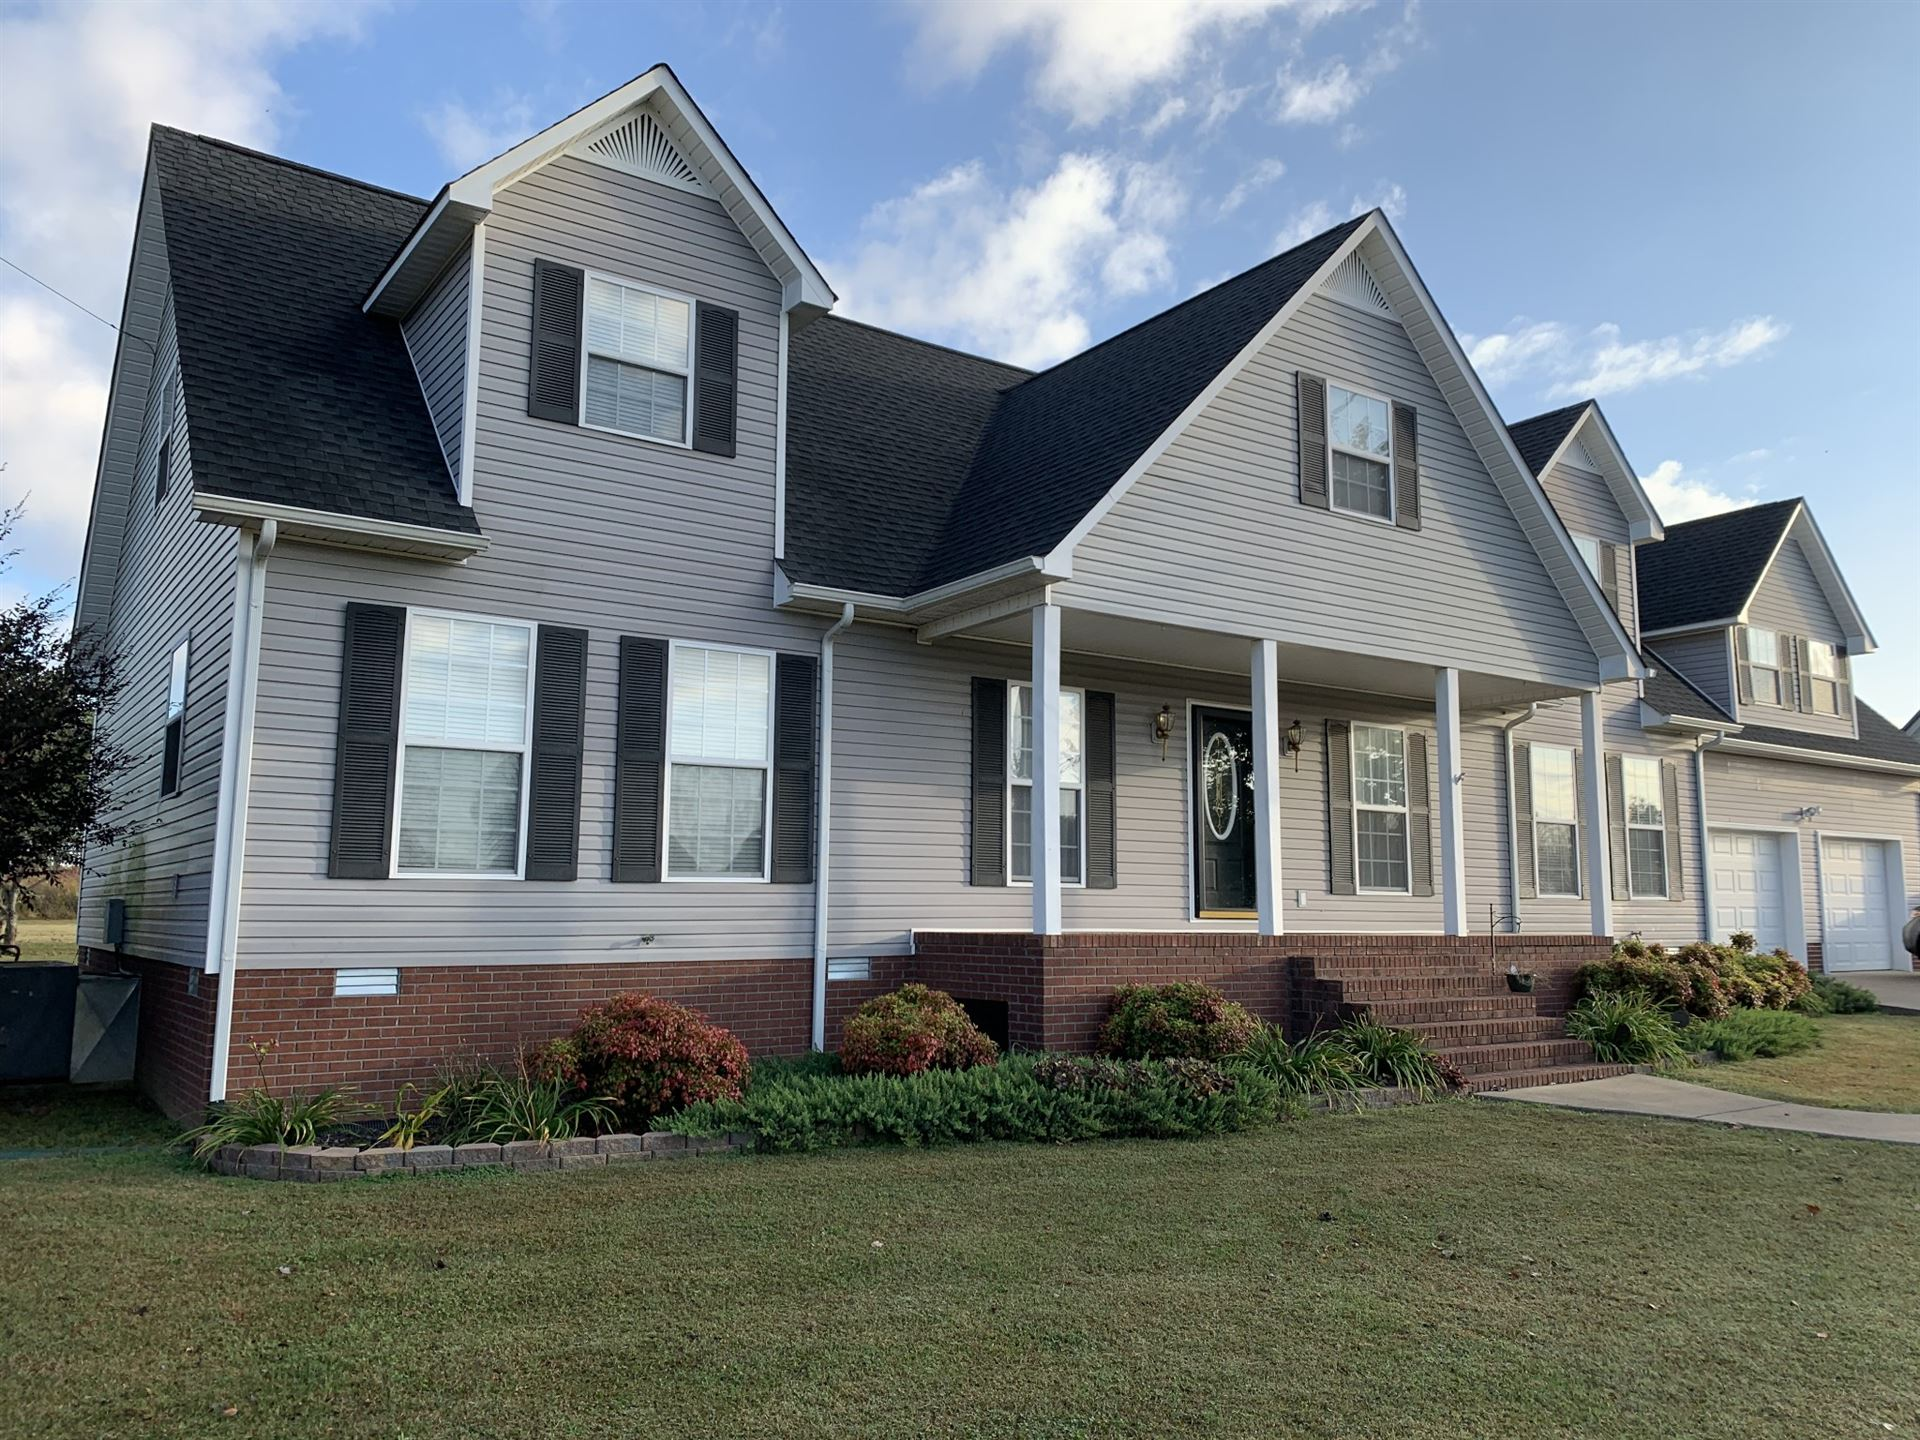 Photo of 201 Gulley Dr, Summertown, TN 38483 (MLS # 2201421)